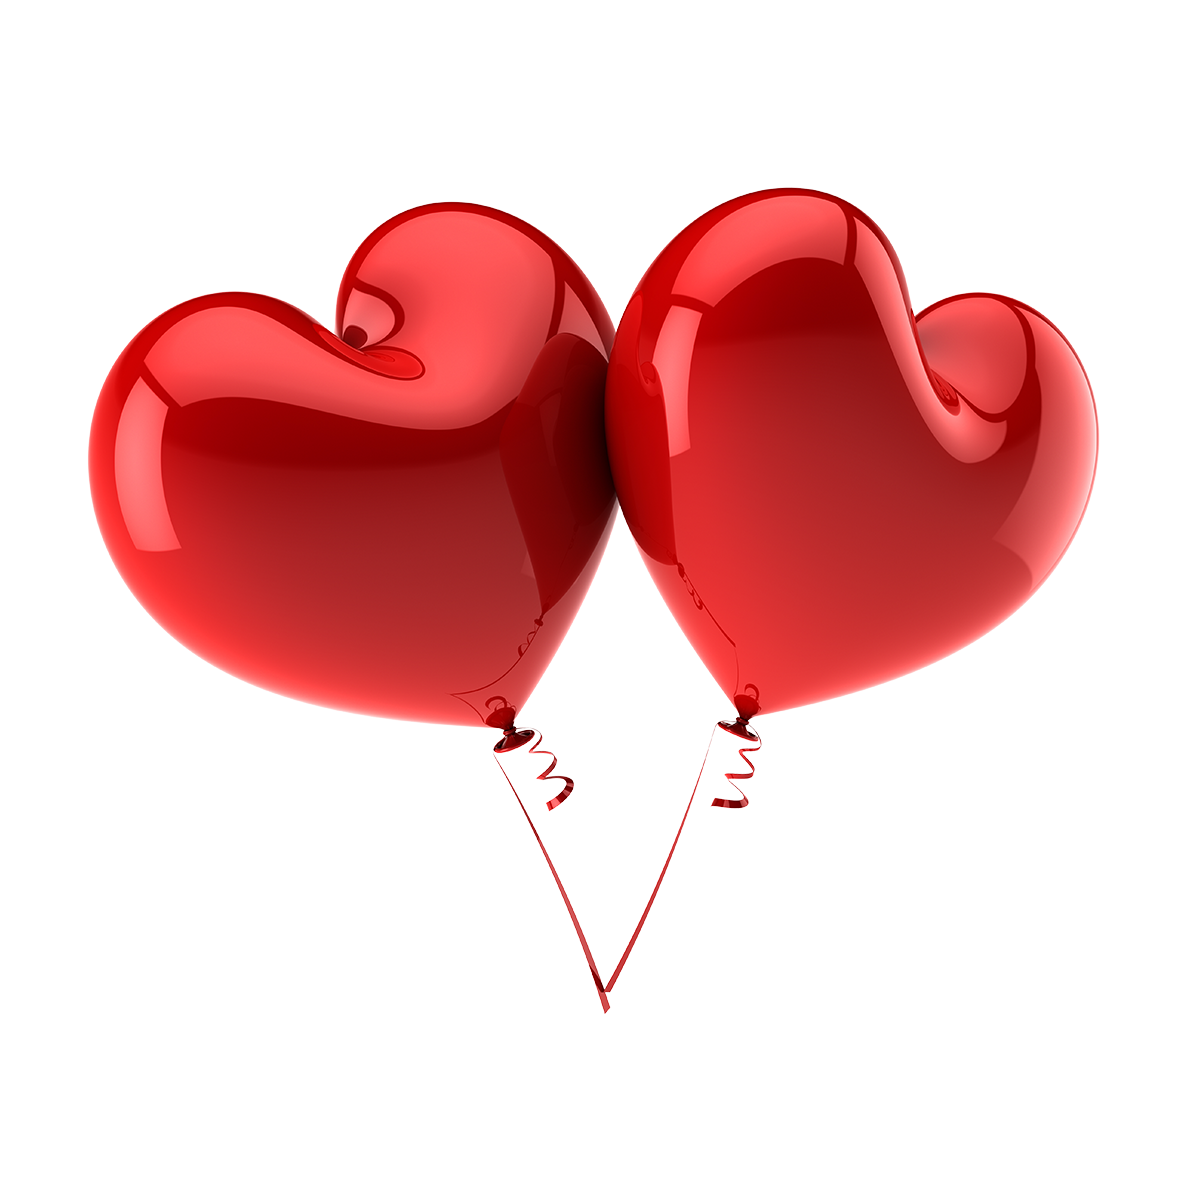 Heart beating clipart picture black and white Heart Balloon Clip art - Heart balloon 1200*1200 transprent Png Free ... picture black and white